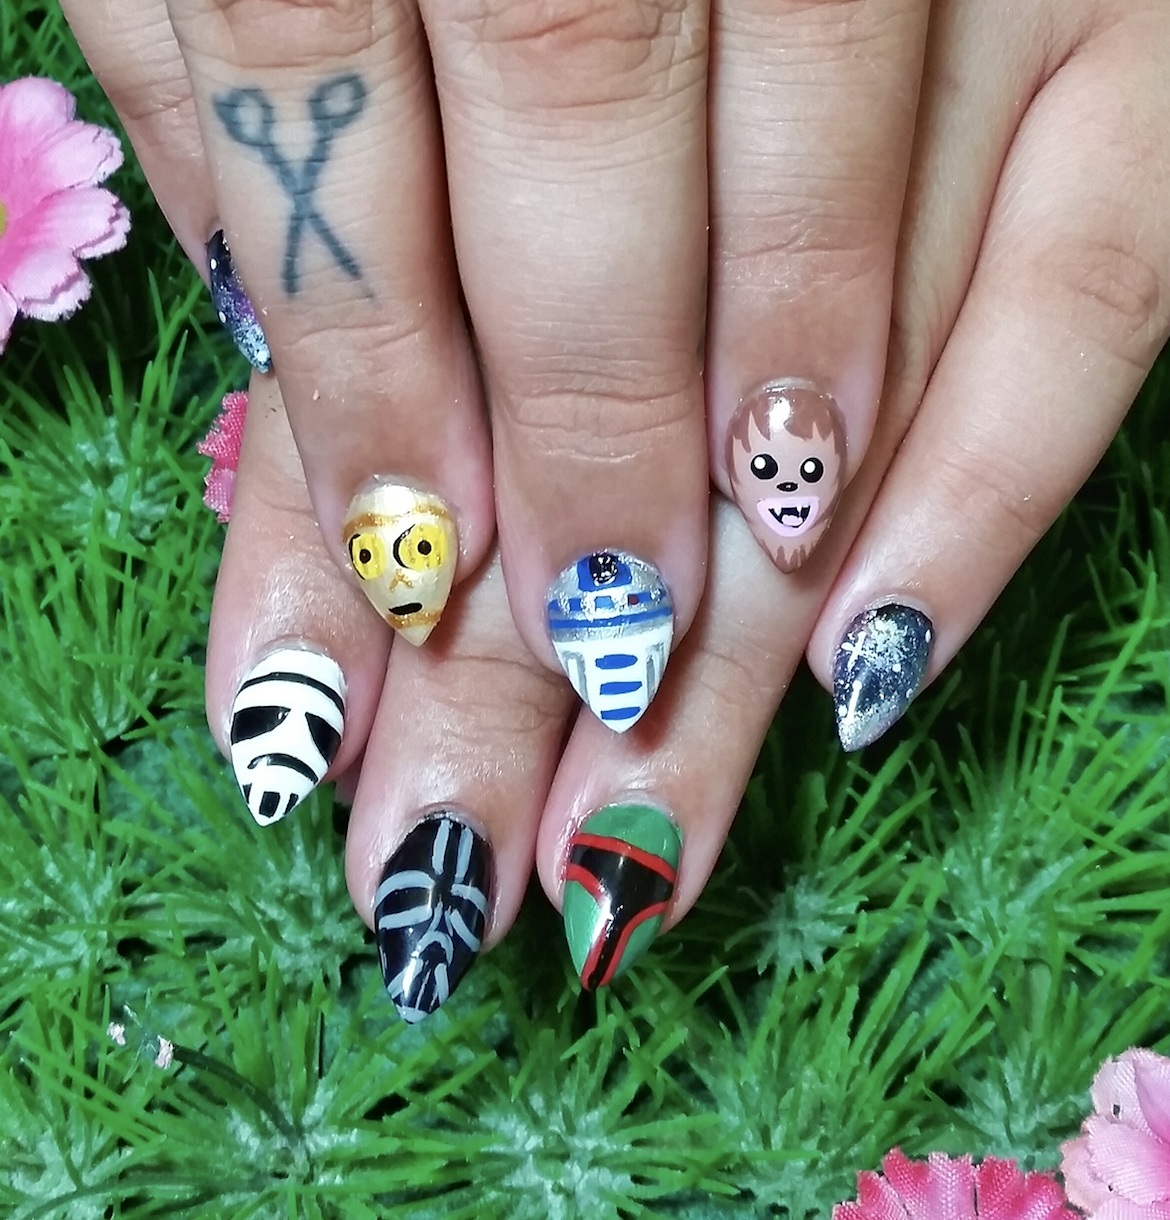 Kawaii klaws star wars nail art netherworld in the lead up to our may the 4th celebration brisbane based nail artist kawaii klaws will be on site in the netherworld this sunday the 30th for all your prinsesfo Gallery